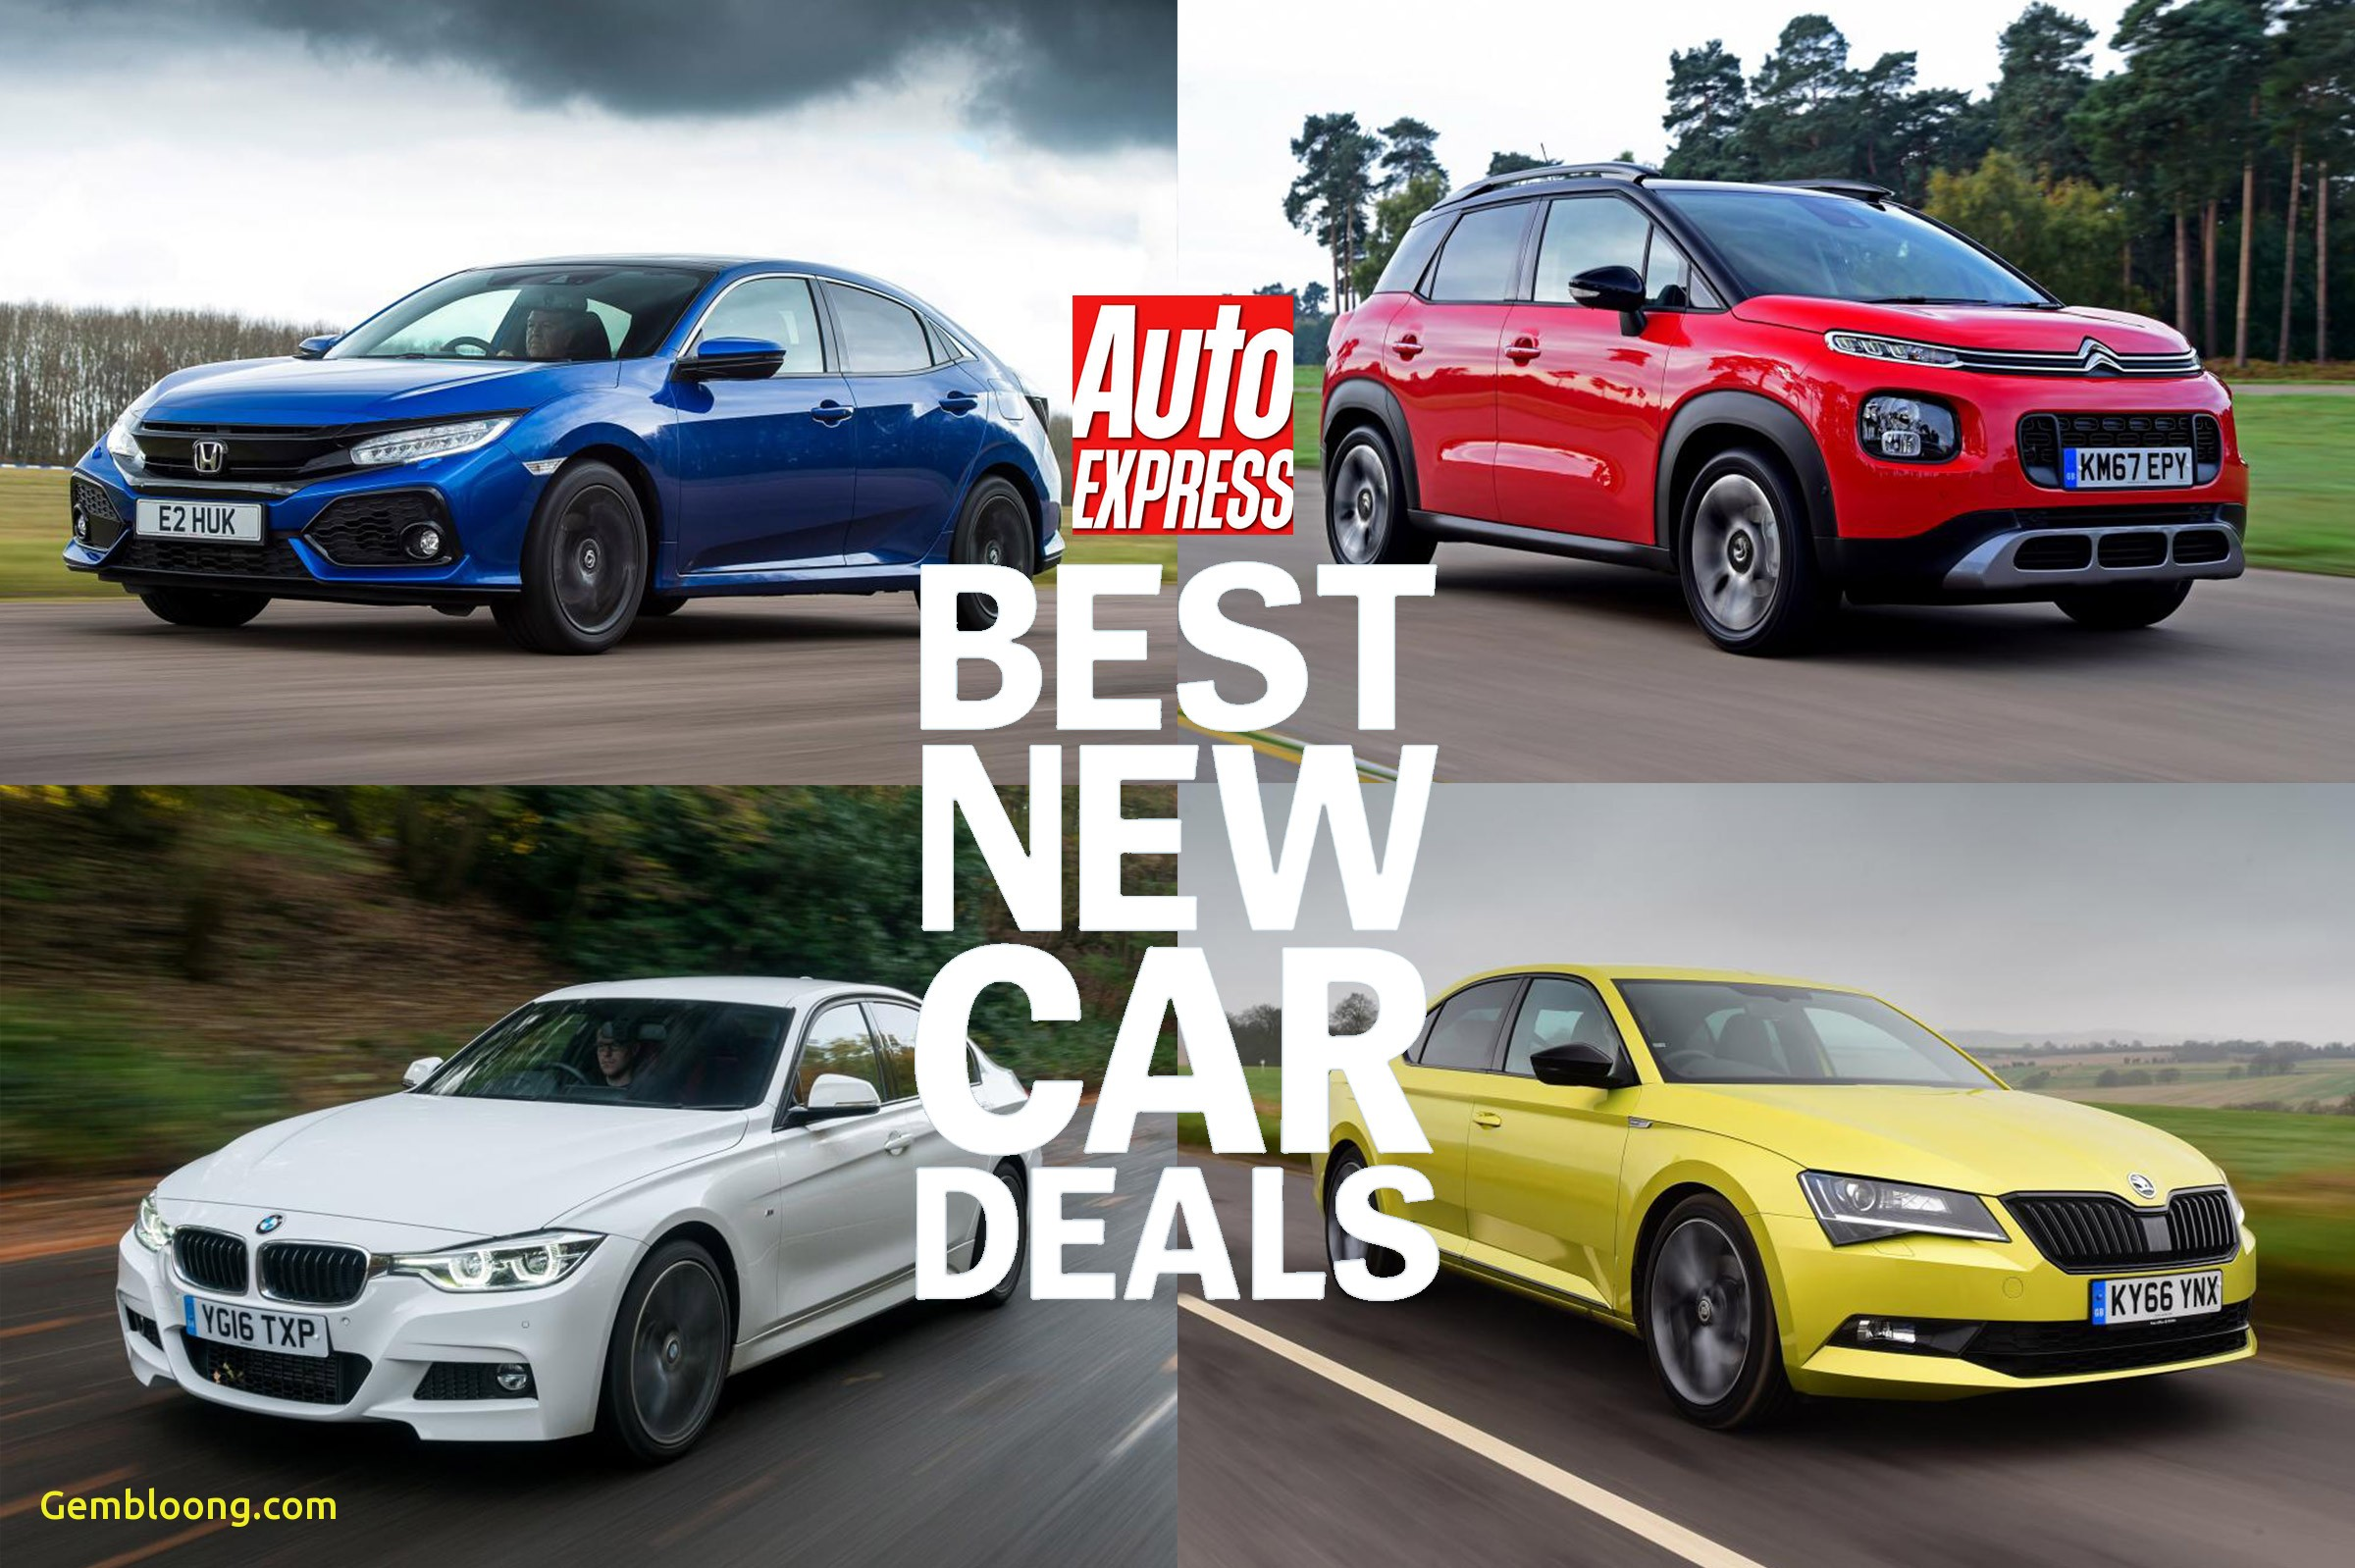 cars for sale near me no credit fresh cars for sale near me low down payment